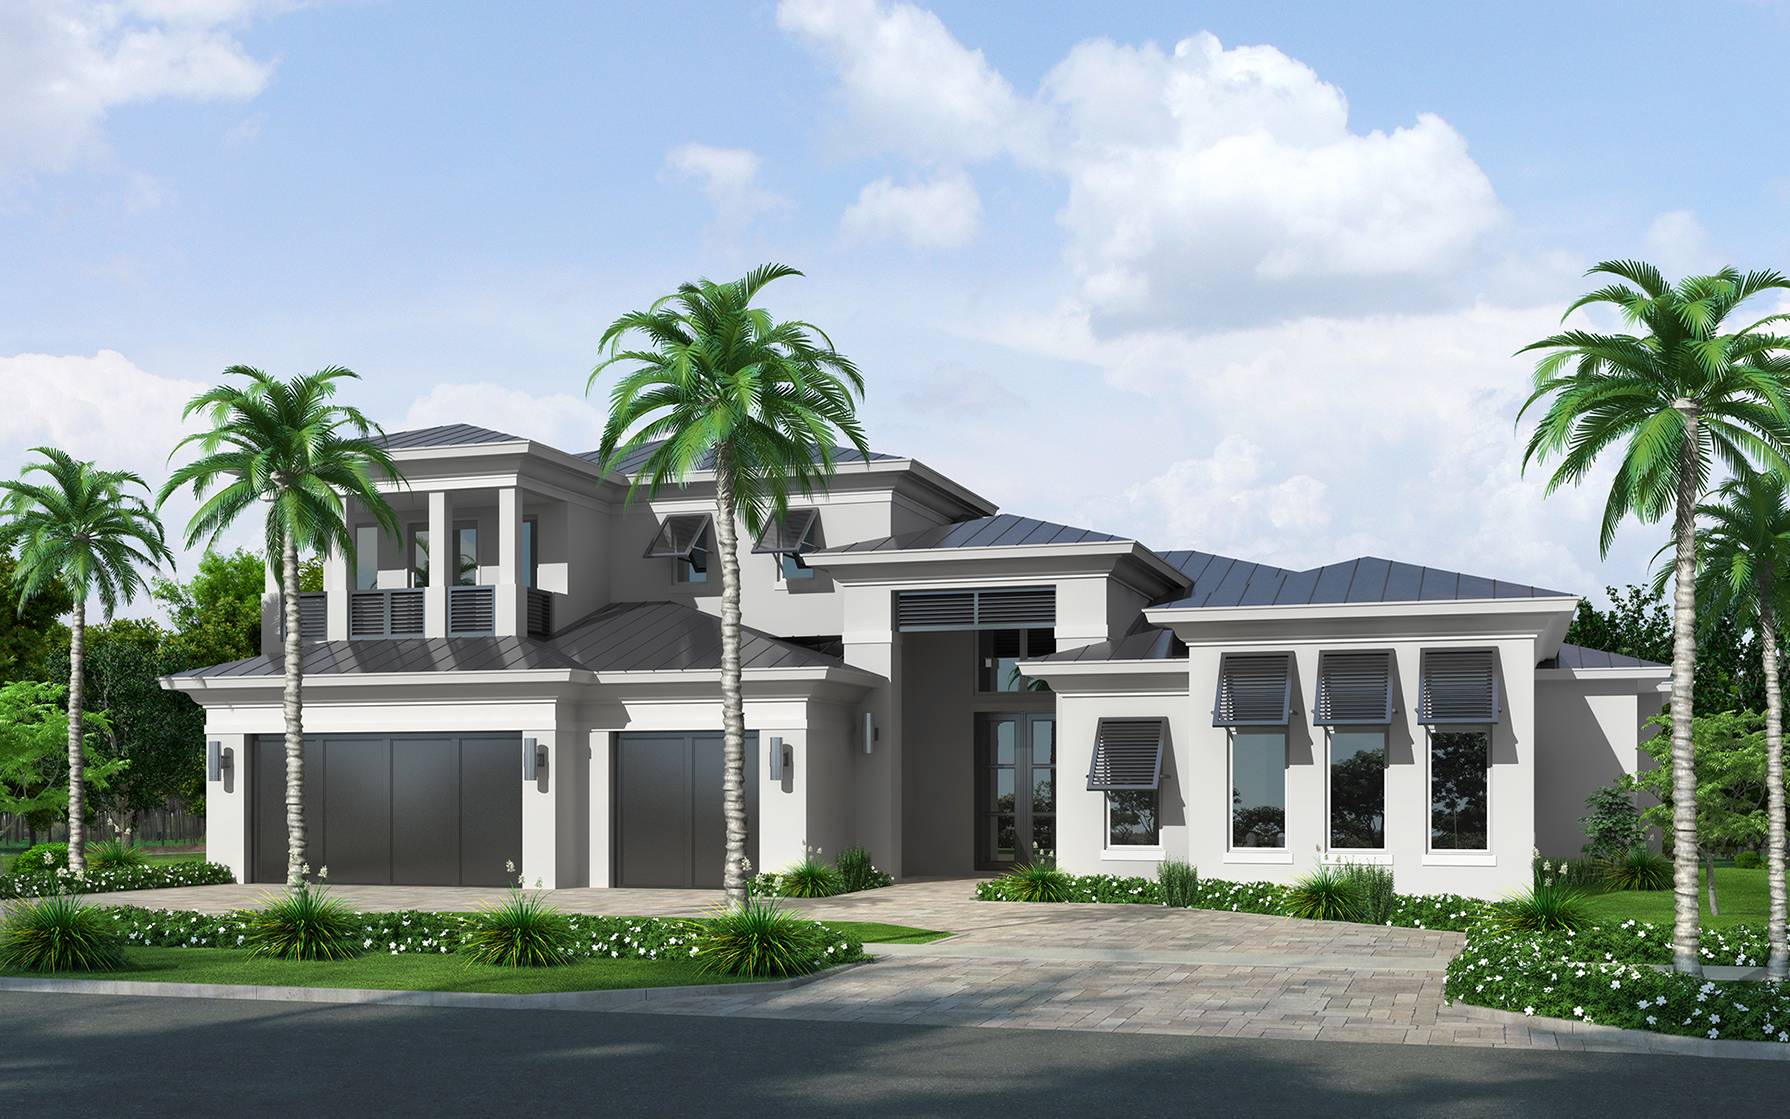 South florida custom home building ccm 561 436 3679 for Luxury home building